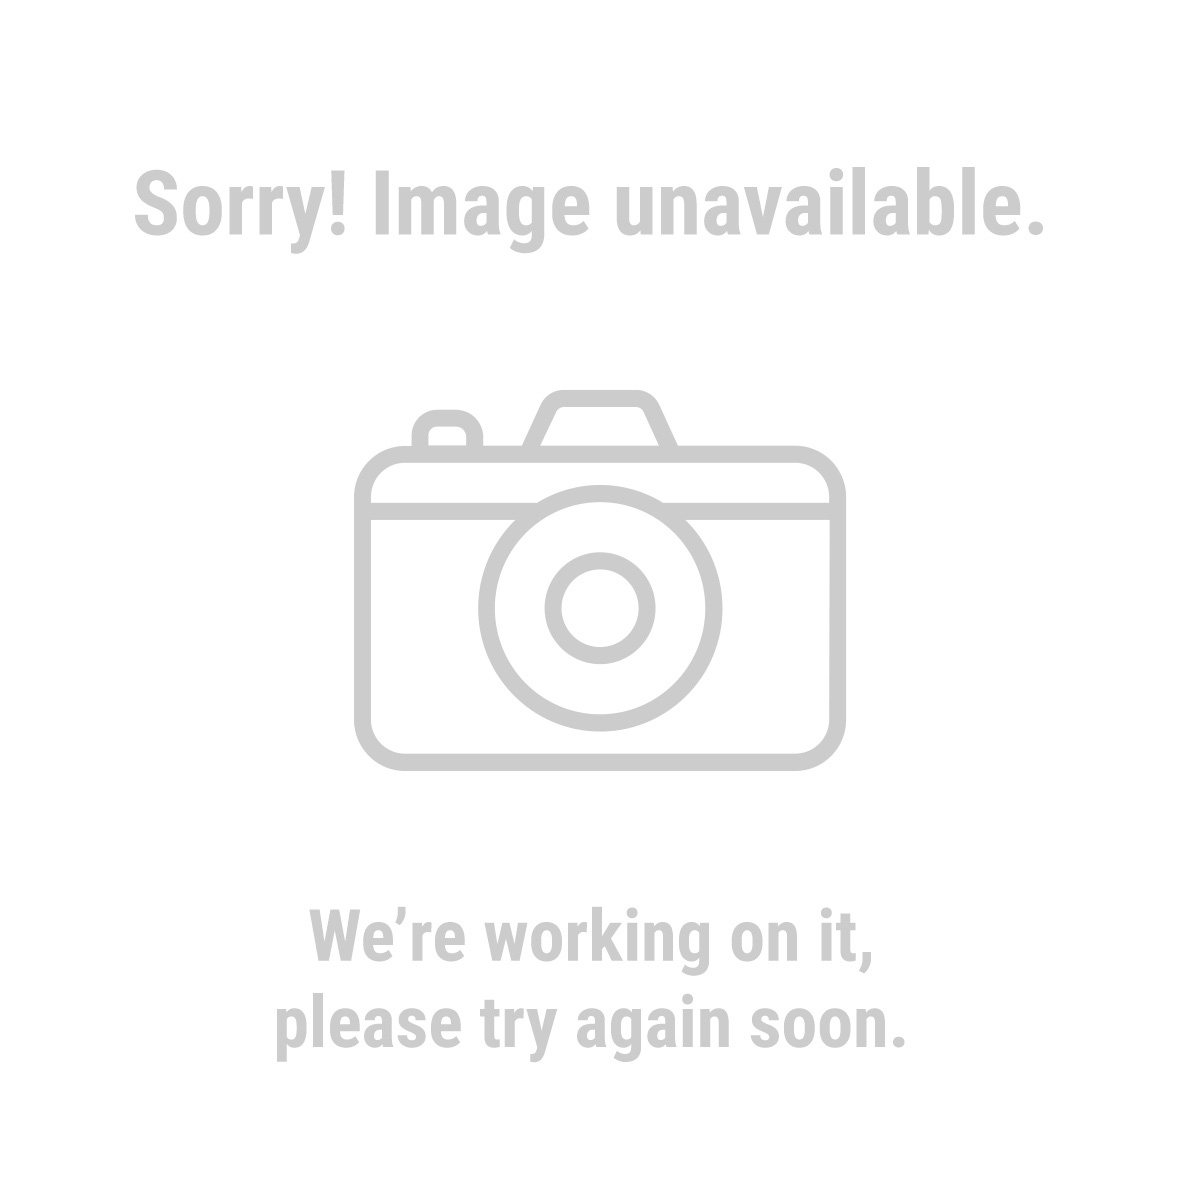 Thunderbolt Magnum 90148 4 Pack AA NiMH Rechargeable Batteries